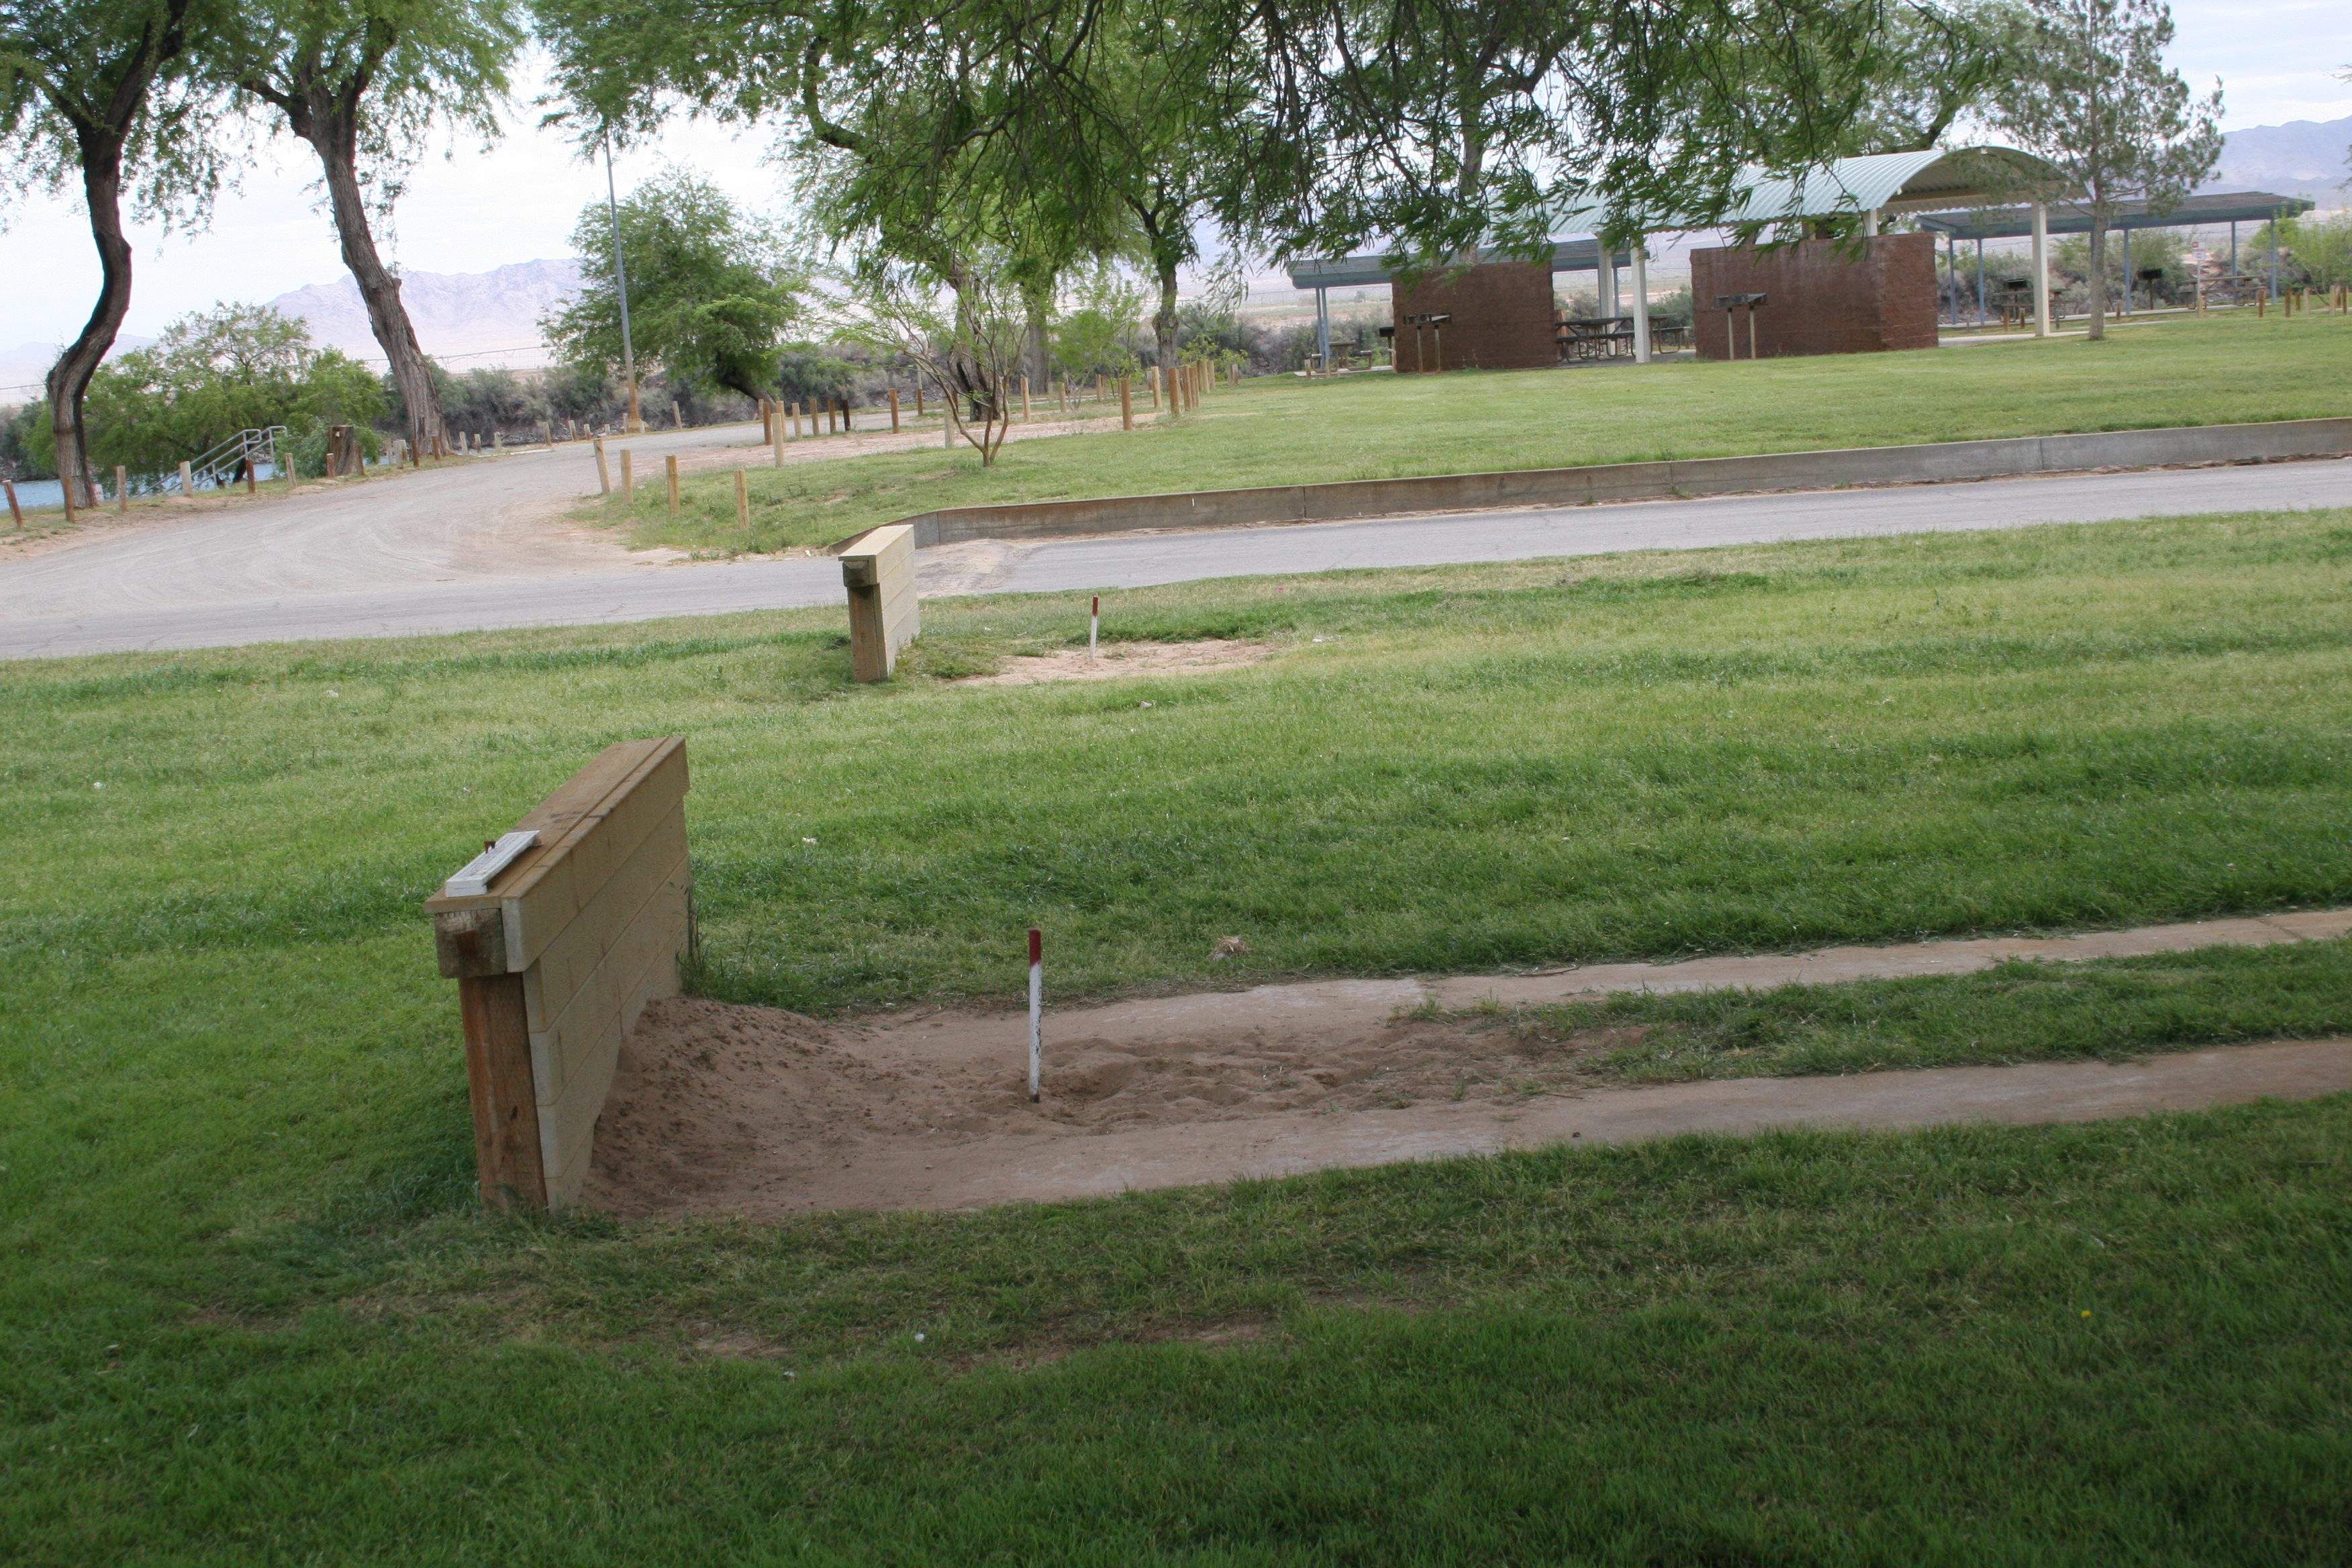 Horse pits at Mayflower Park